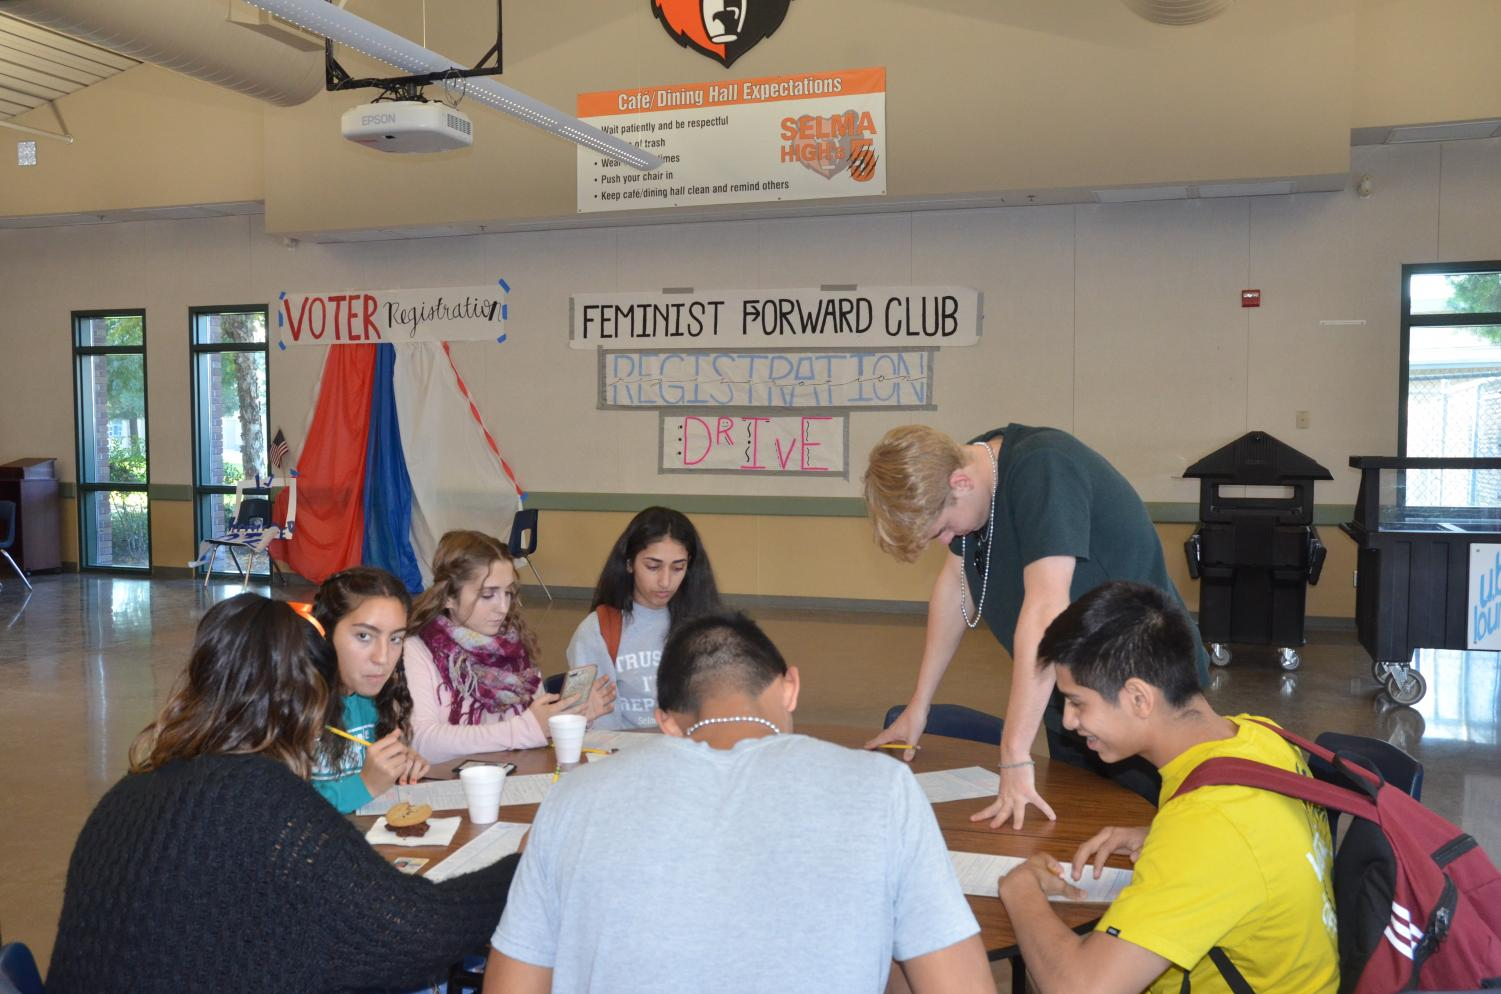 The Feminist Forward Club helps students register to vote.